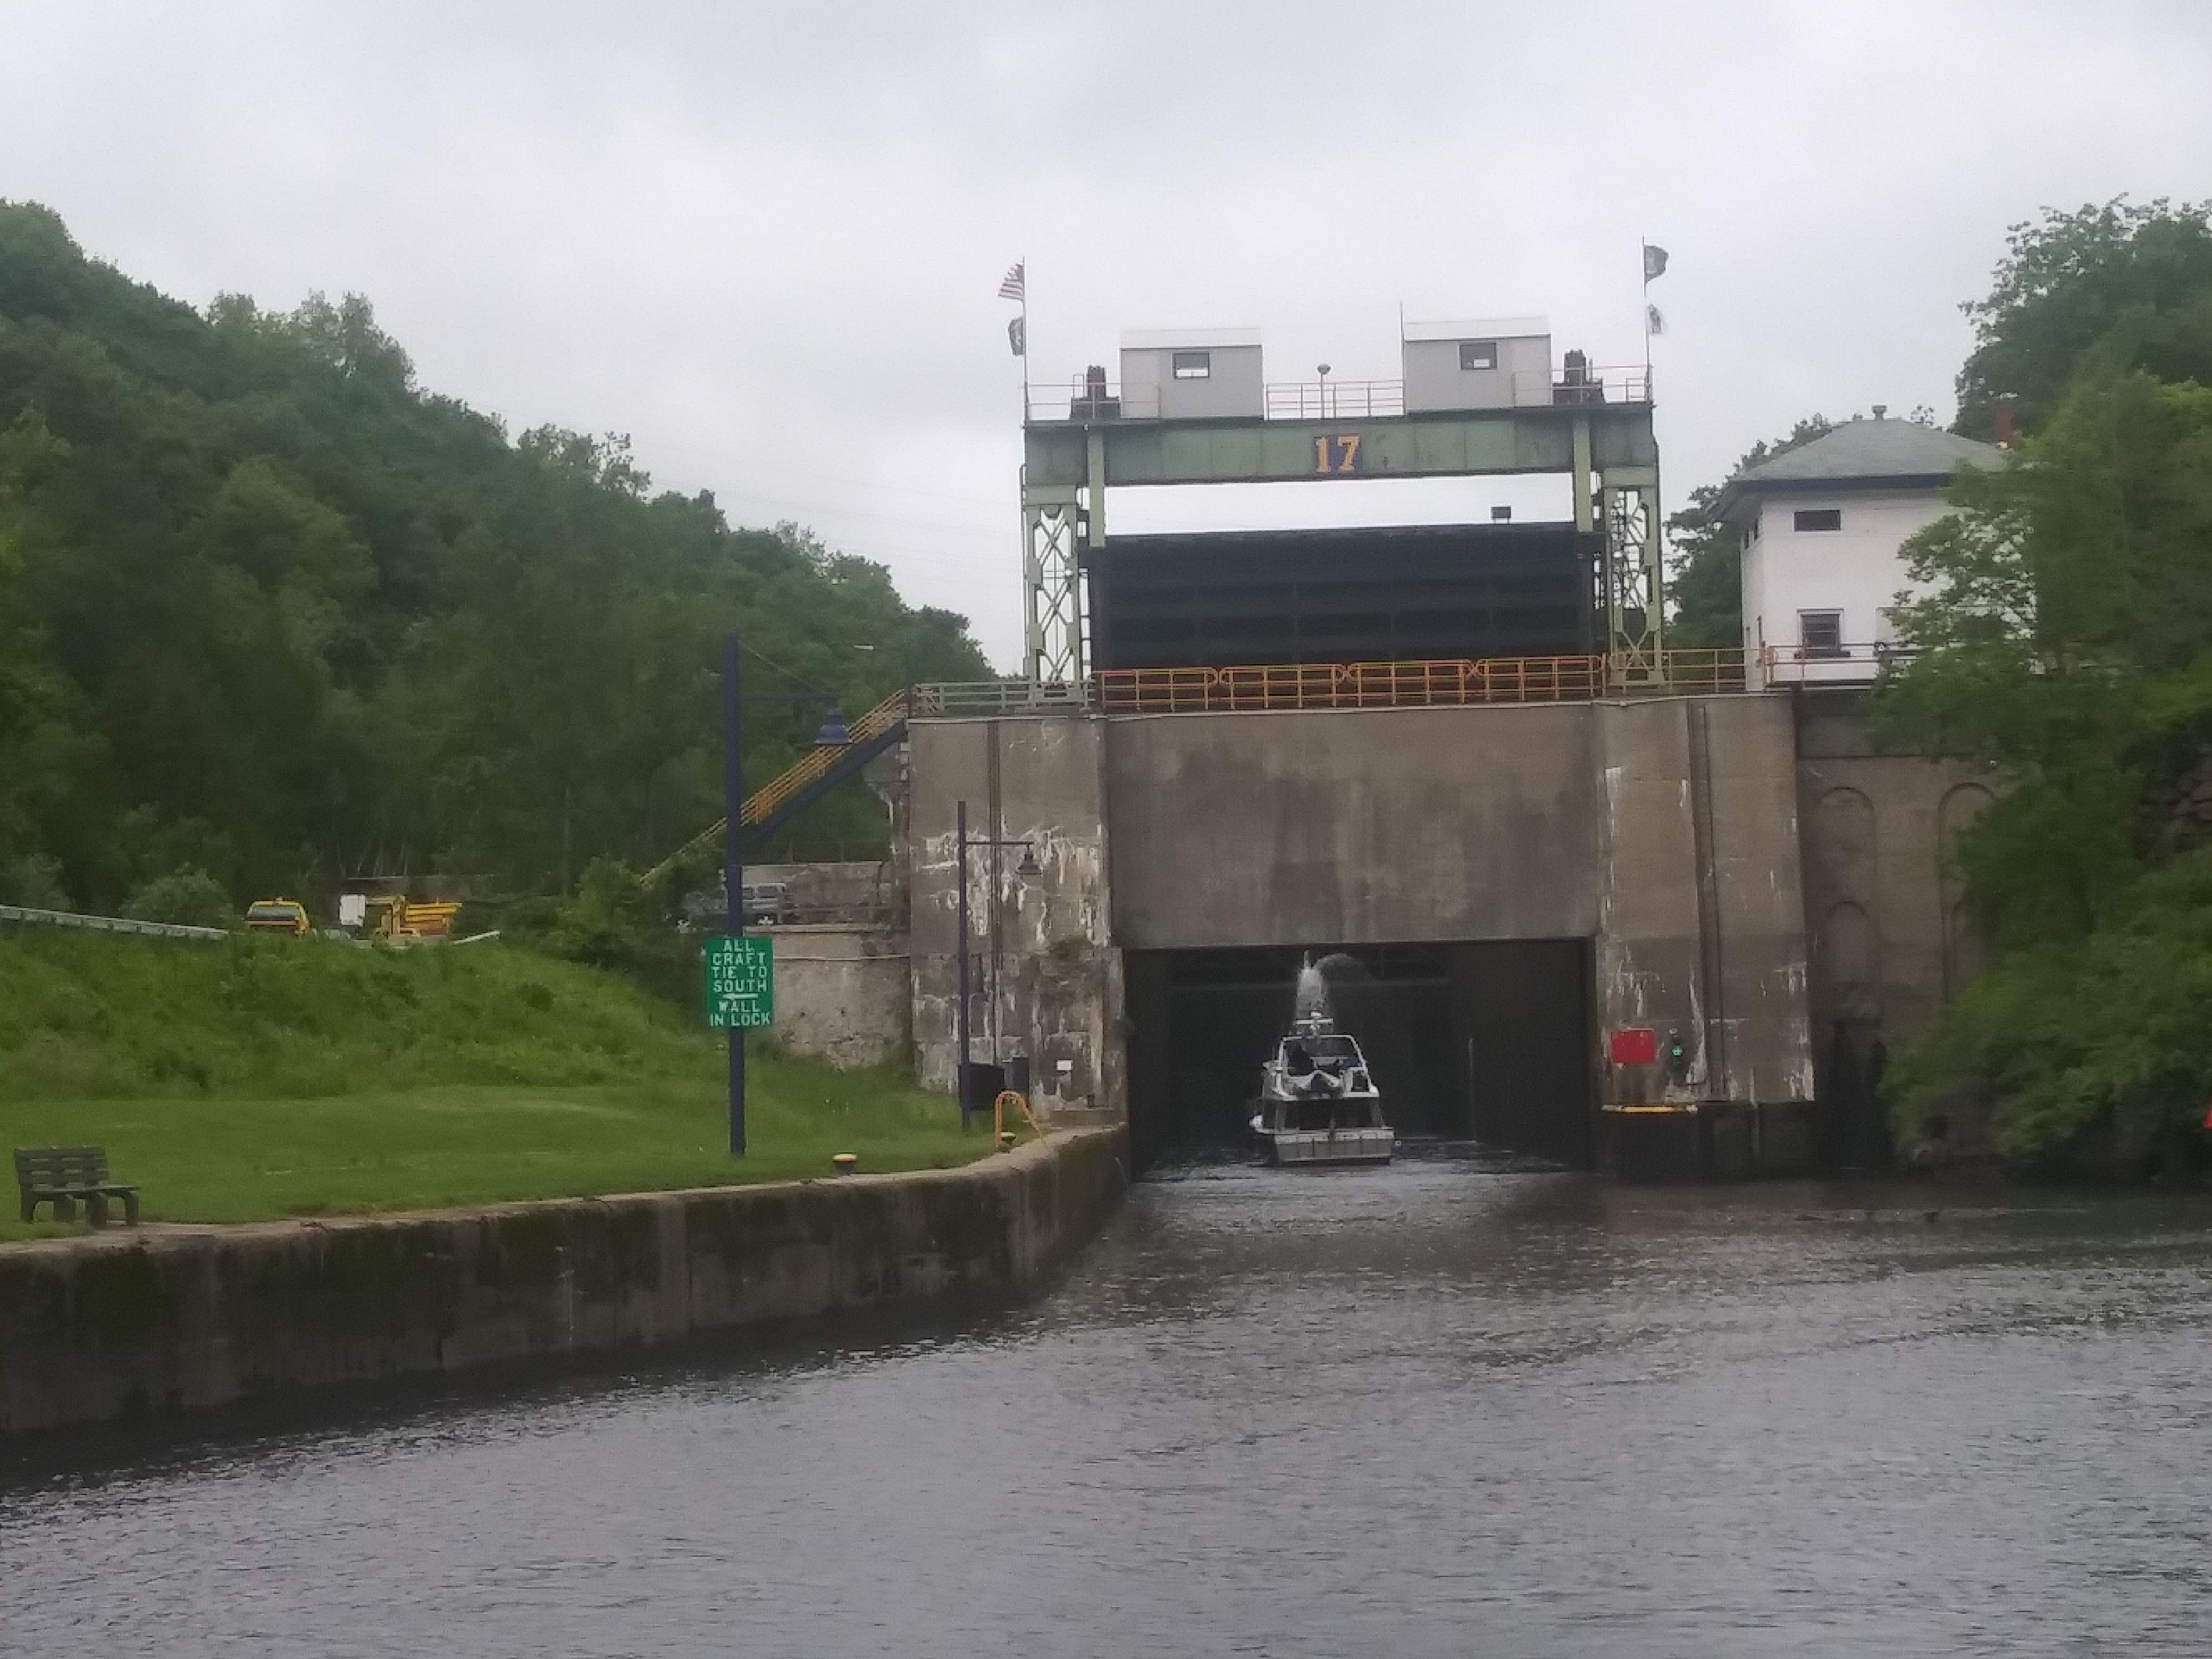 Lock 17 on the Erie Canal